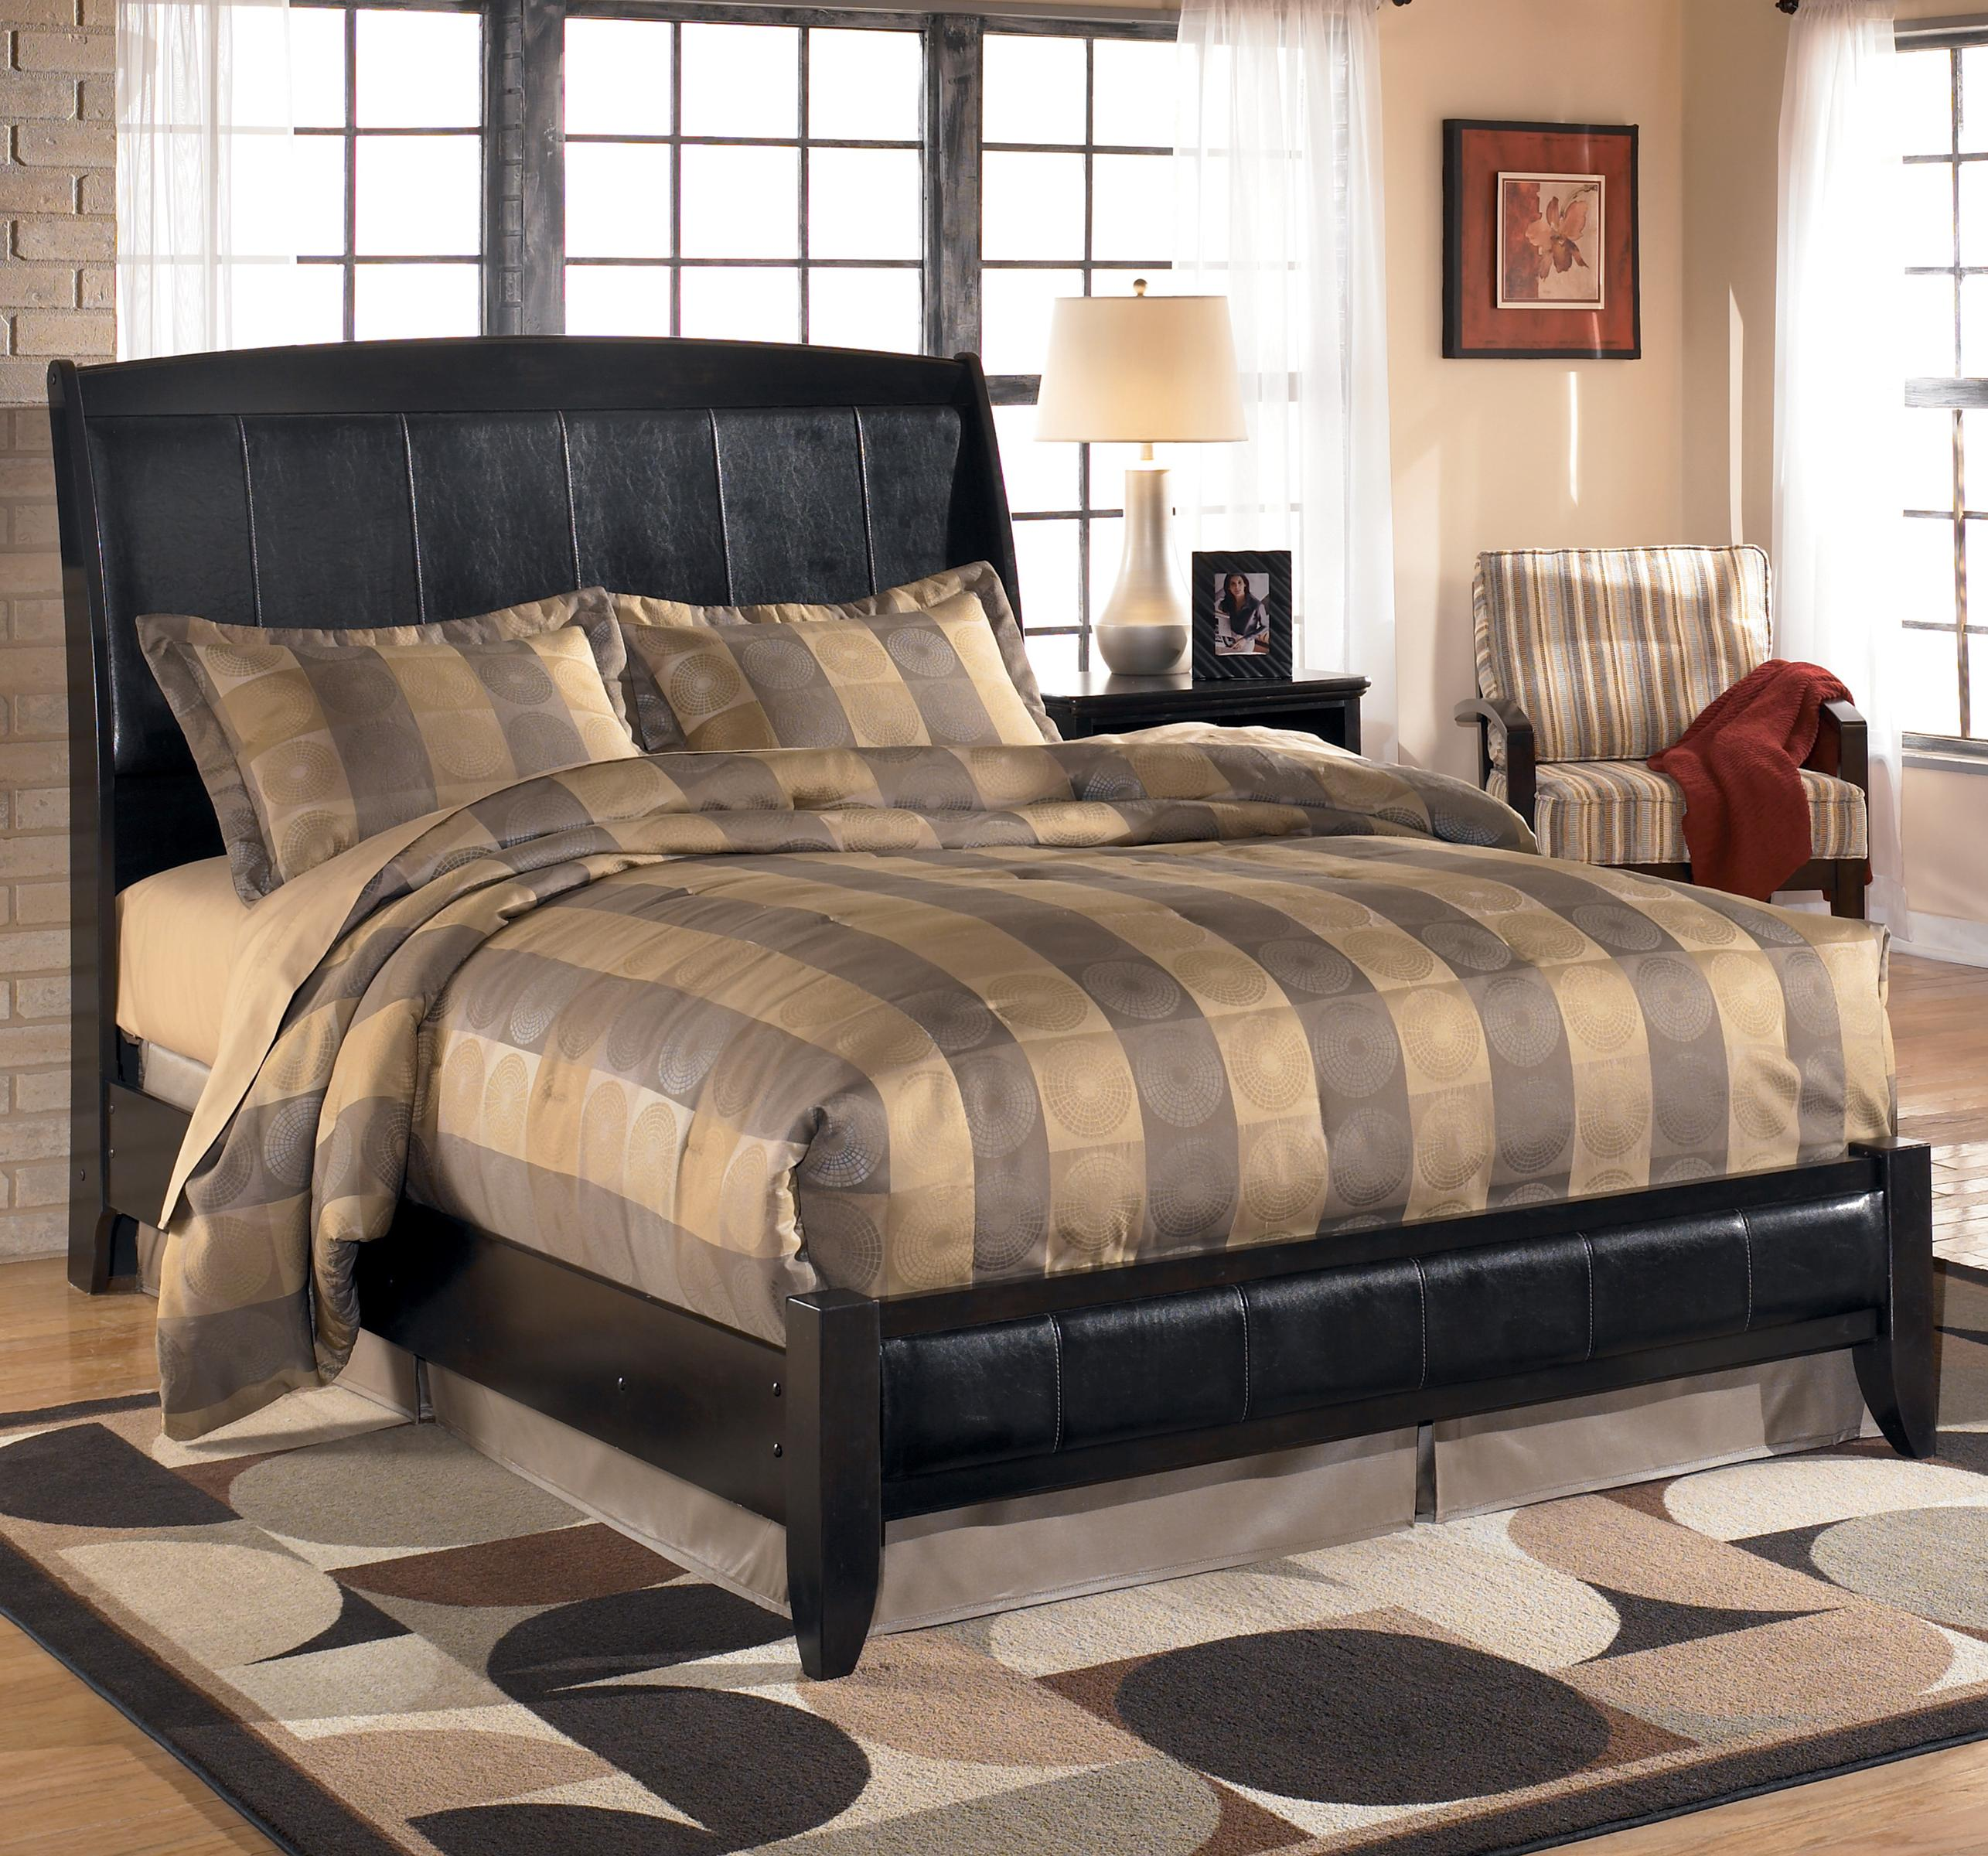 Signature Design By Ashley Harmony King Upholstered Sleigh Headboard With Platform Style